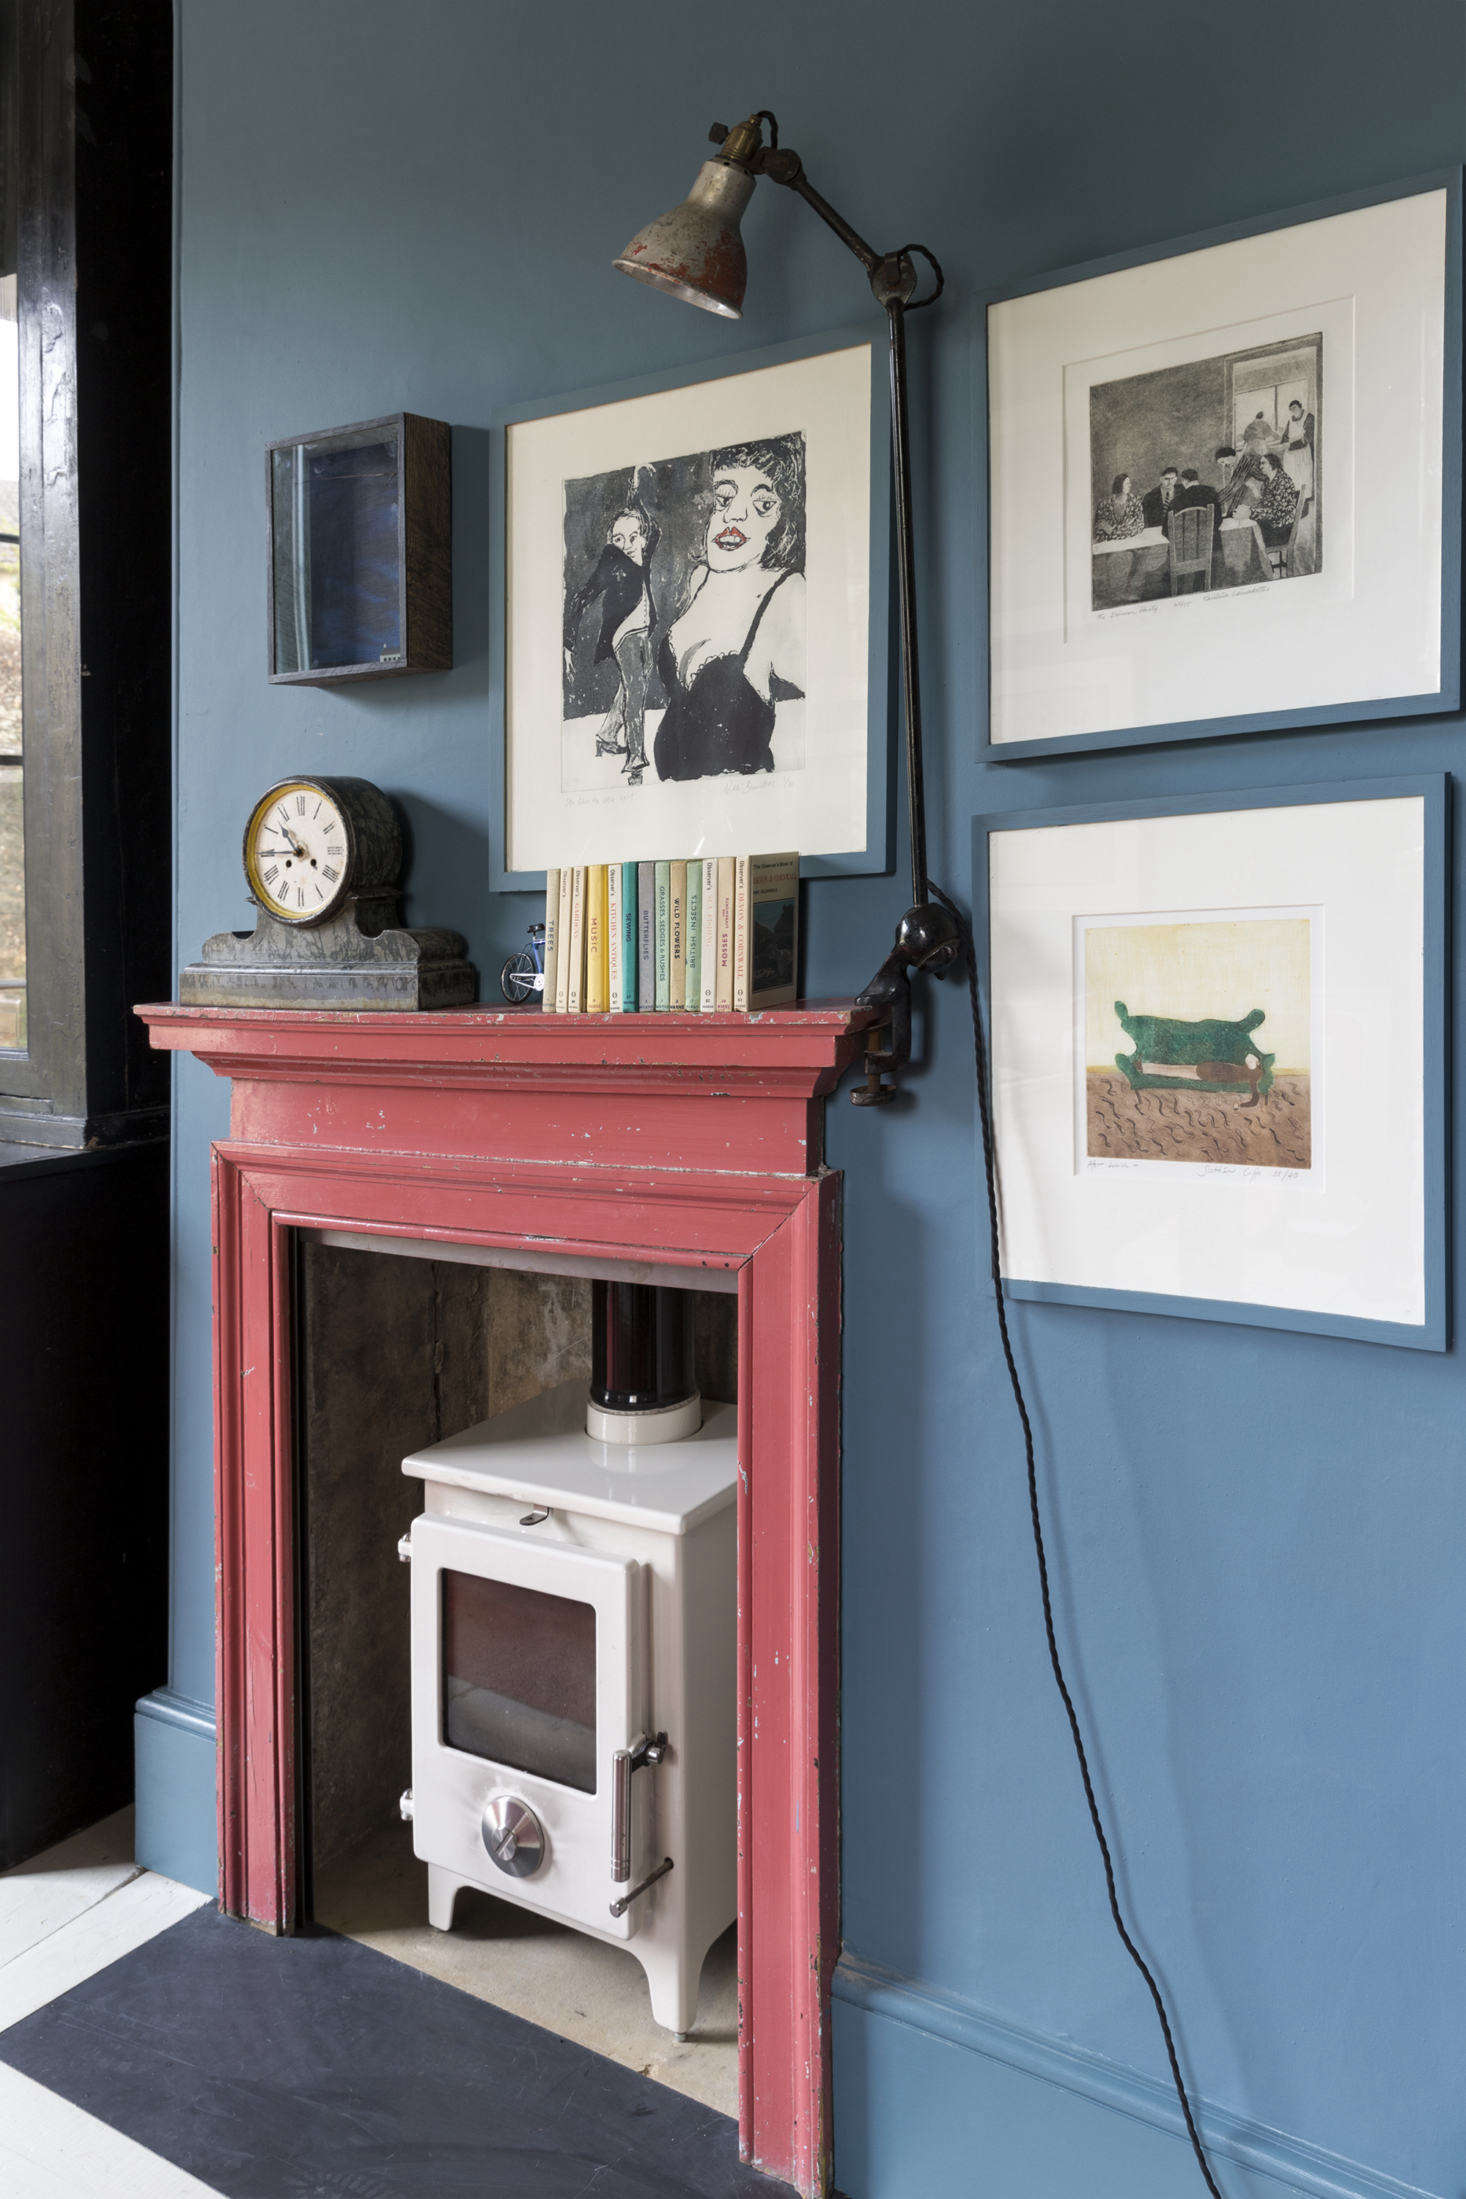 An antique mantel in its original paint was added to the room along with a wood-burning stove and vintage workman's light. Photograph by Claudia Rocha courtesy of Howe London.